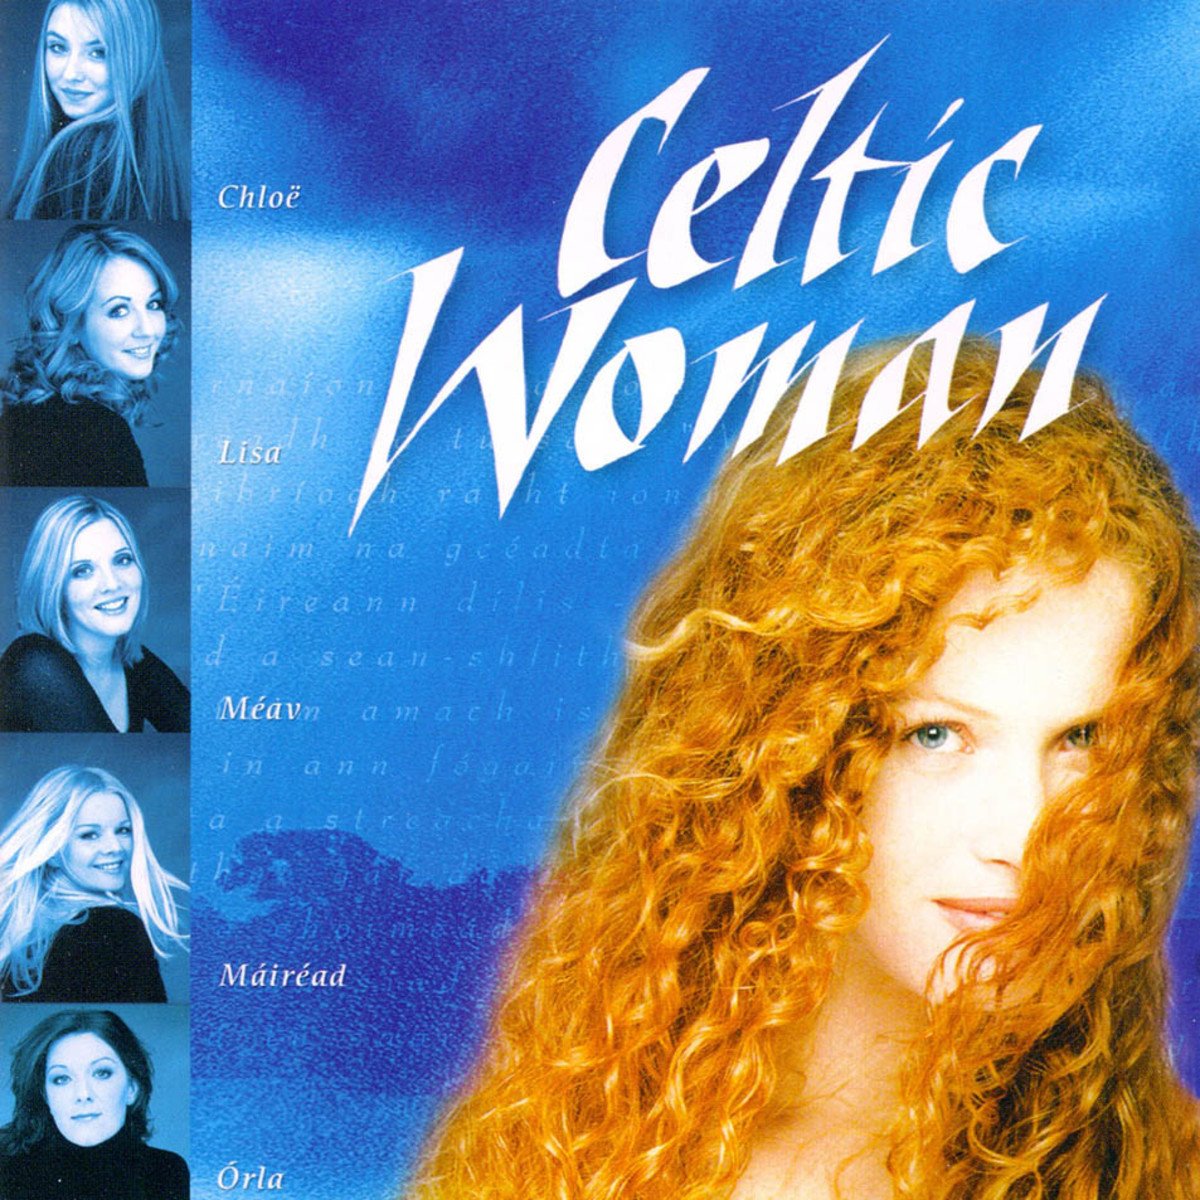 Celtic Woman album.